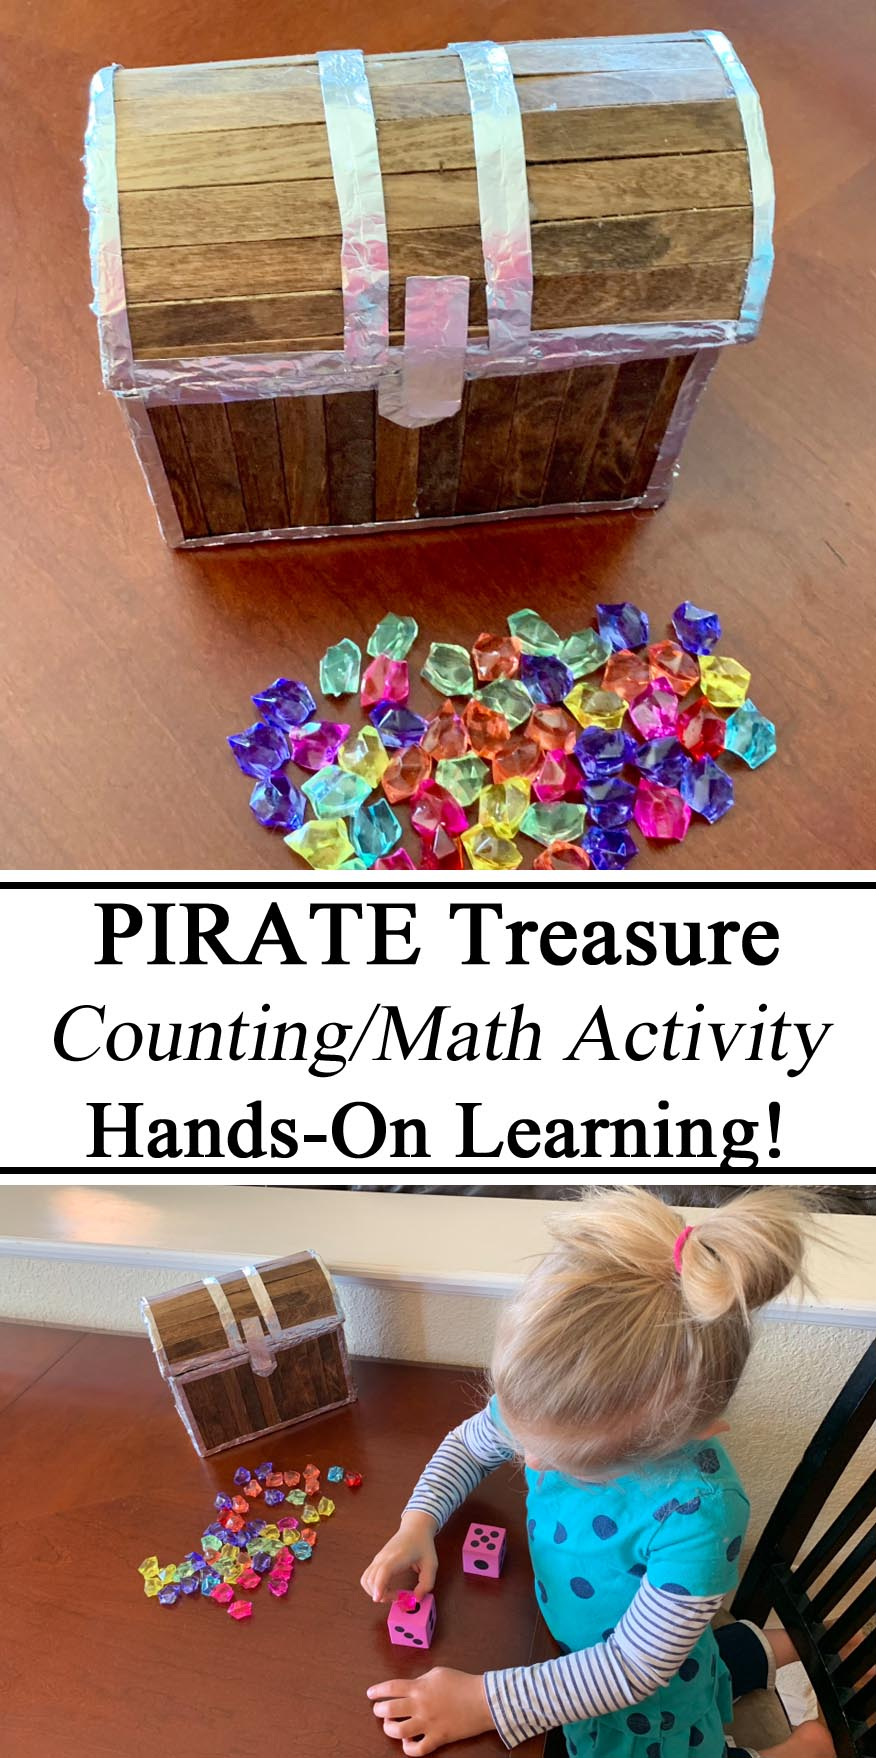 Homeschool, Homeschooling, Unschool, Unschooling, Pirate Treasure, educational ideas inspiration, montessori, waldorf, manipulatives, hands on learning, counting, math learning to count, numbers preschool, prek, kindergarten, toddlers, summer activities sensory